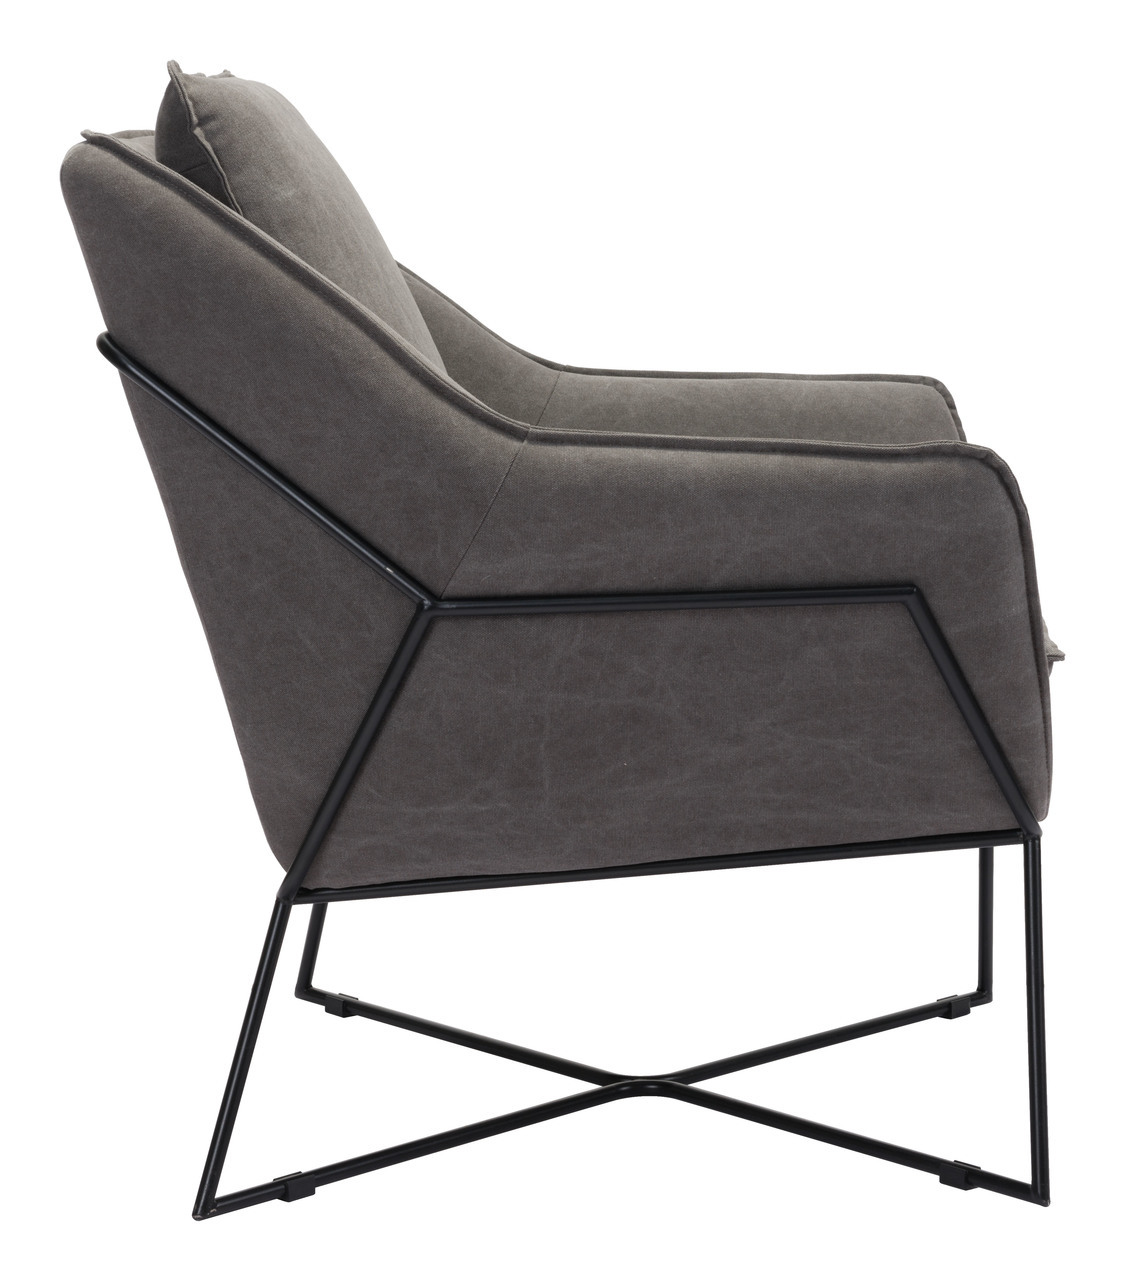 zuo lincoln lounge chair gray